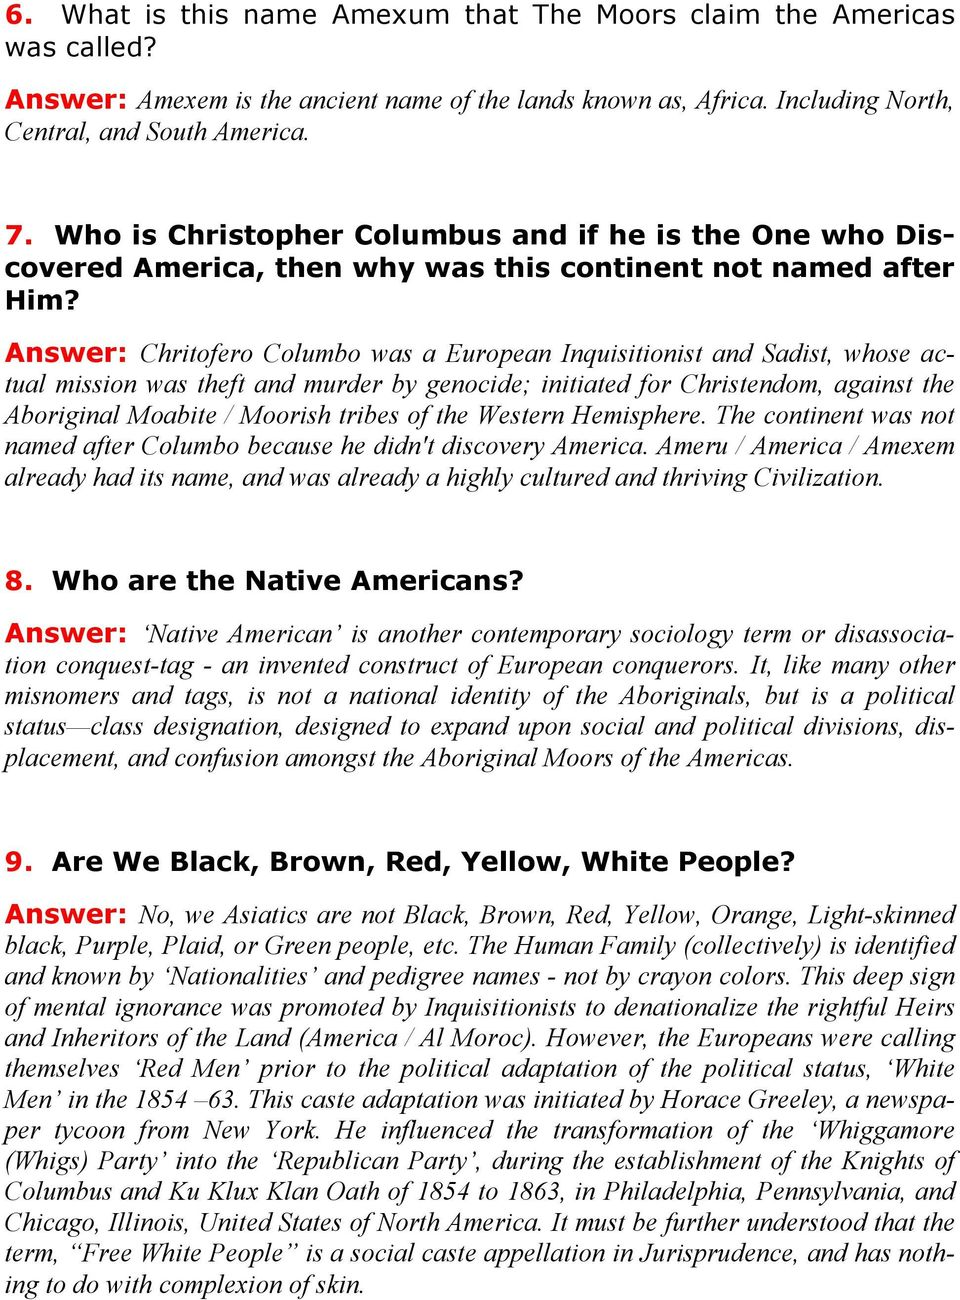 Answer: Chritofero Columbo was a European Inquisitionist and Sadist, whose actual mission was theft and murder by genocide; initiated for Christendom, against the Aboriginal Moabite / Moorish tribes